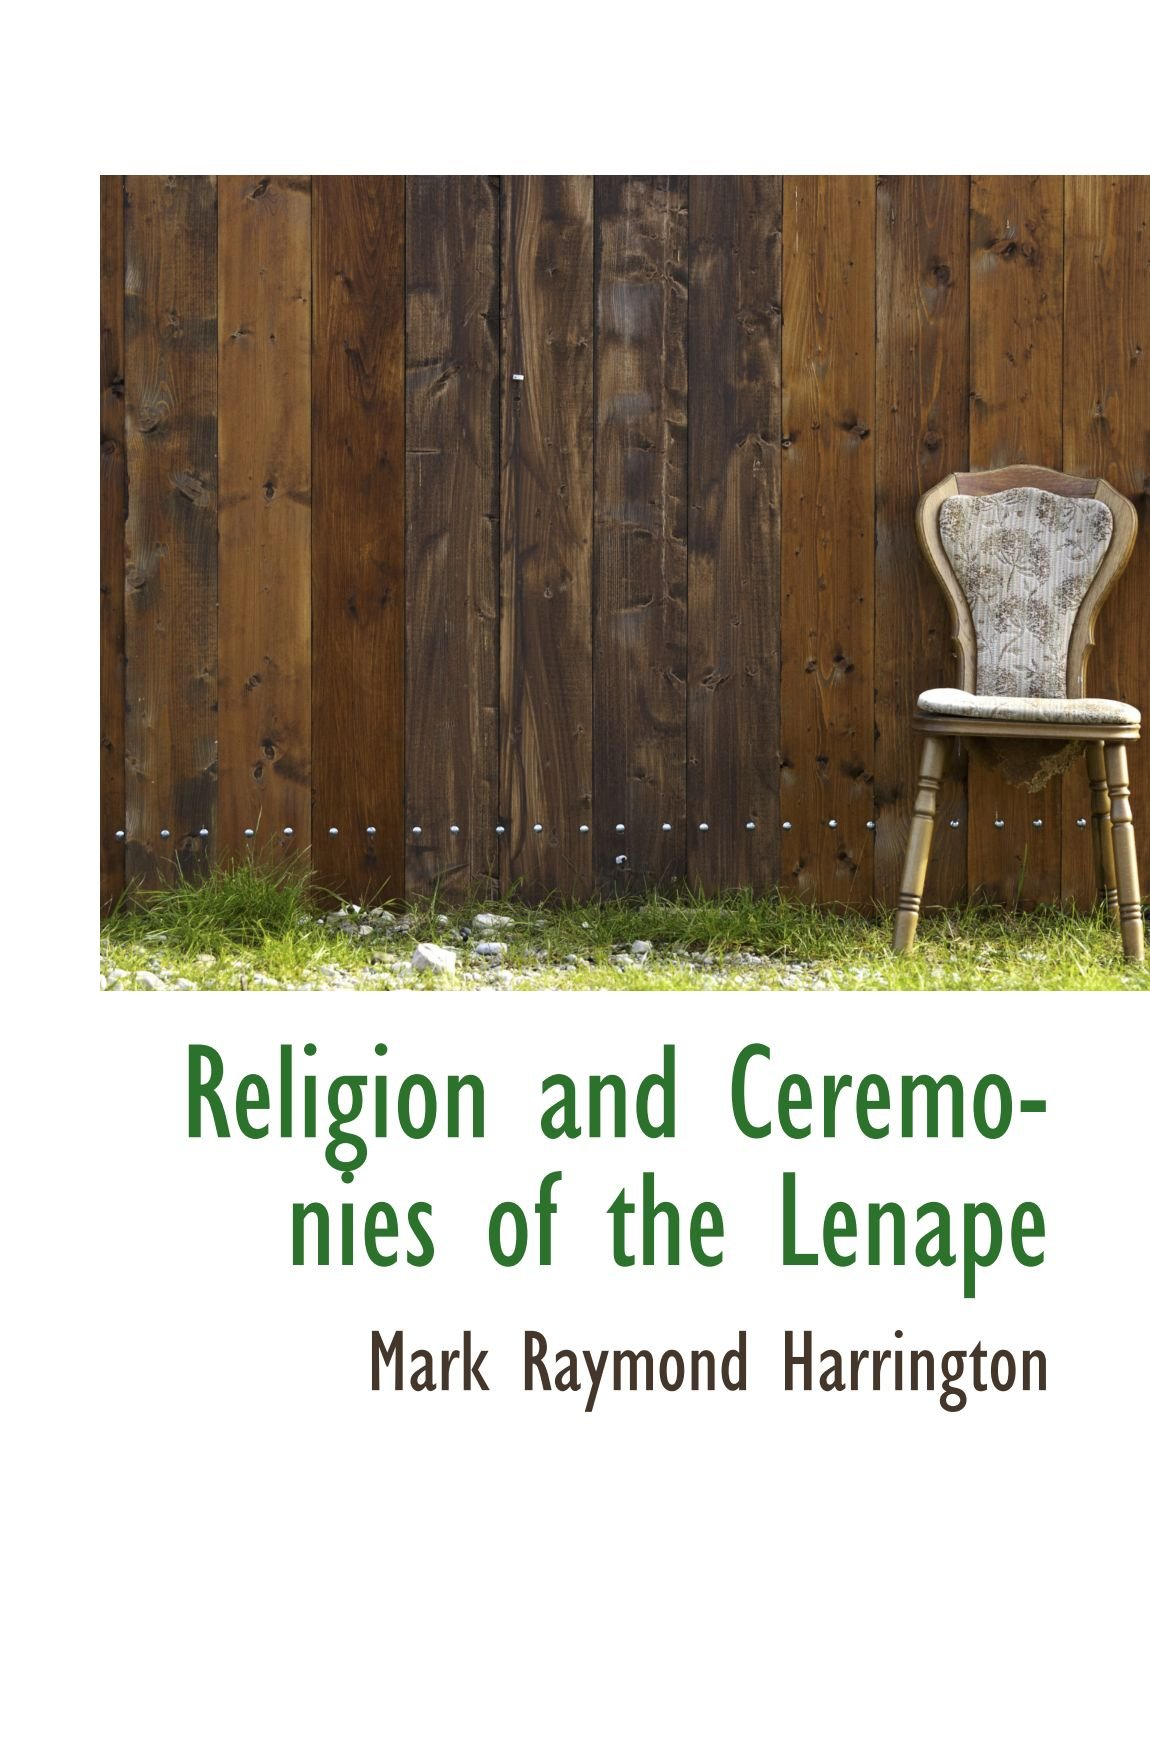 Religion and Ceremonies of the Lenape pdf